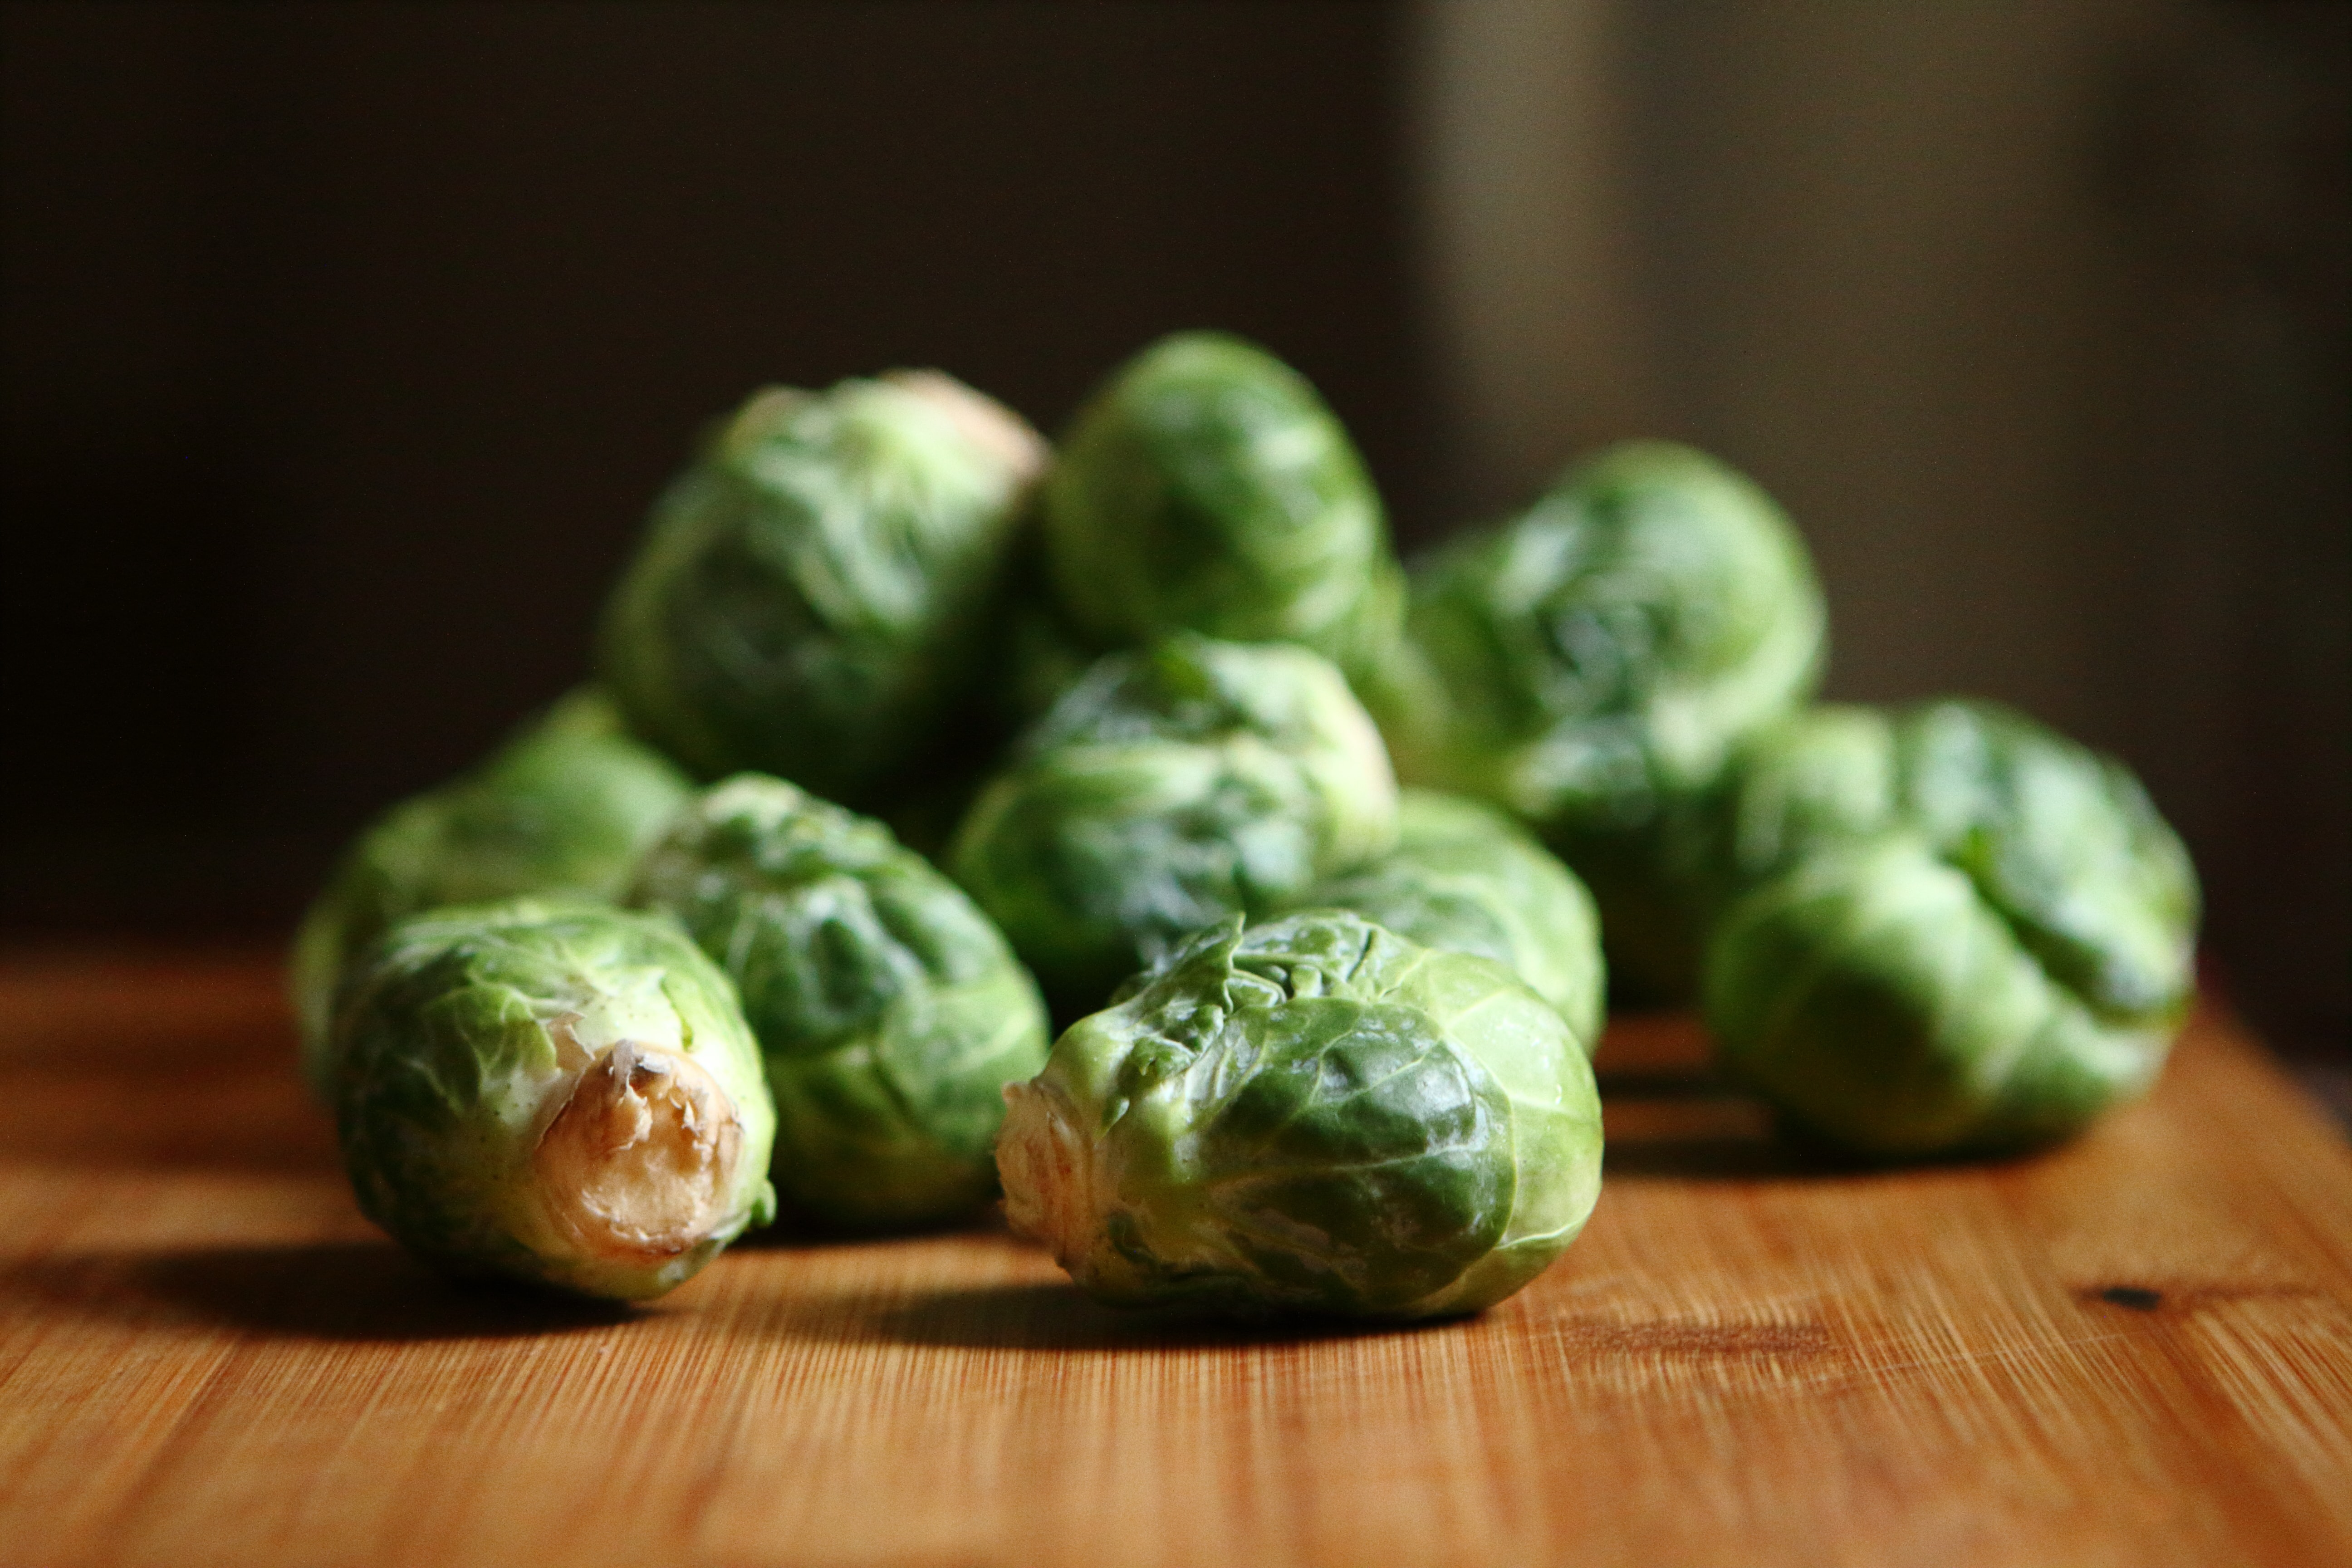 Brussel sprouts on a cutting board ready to prepare